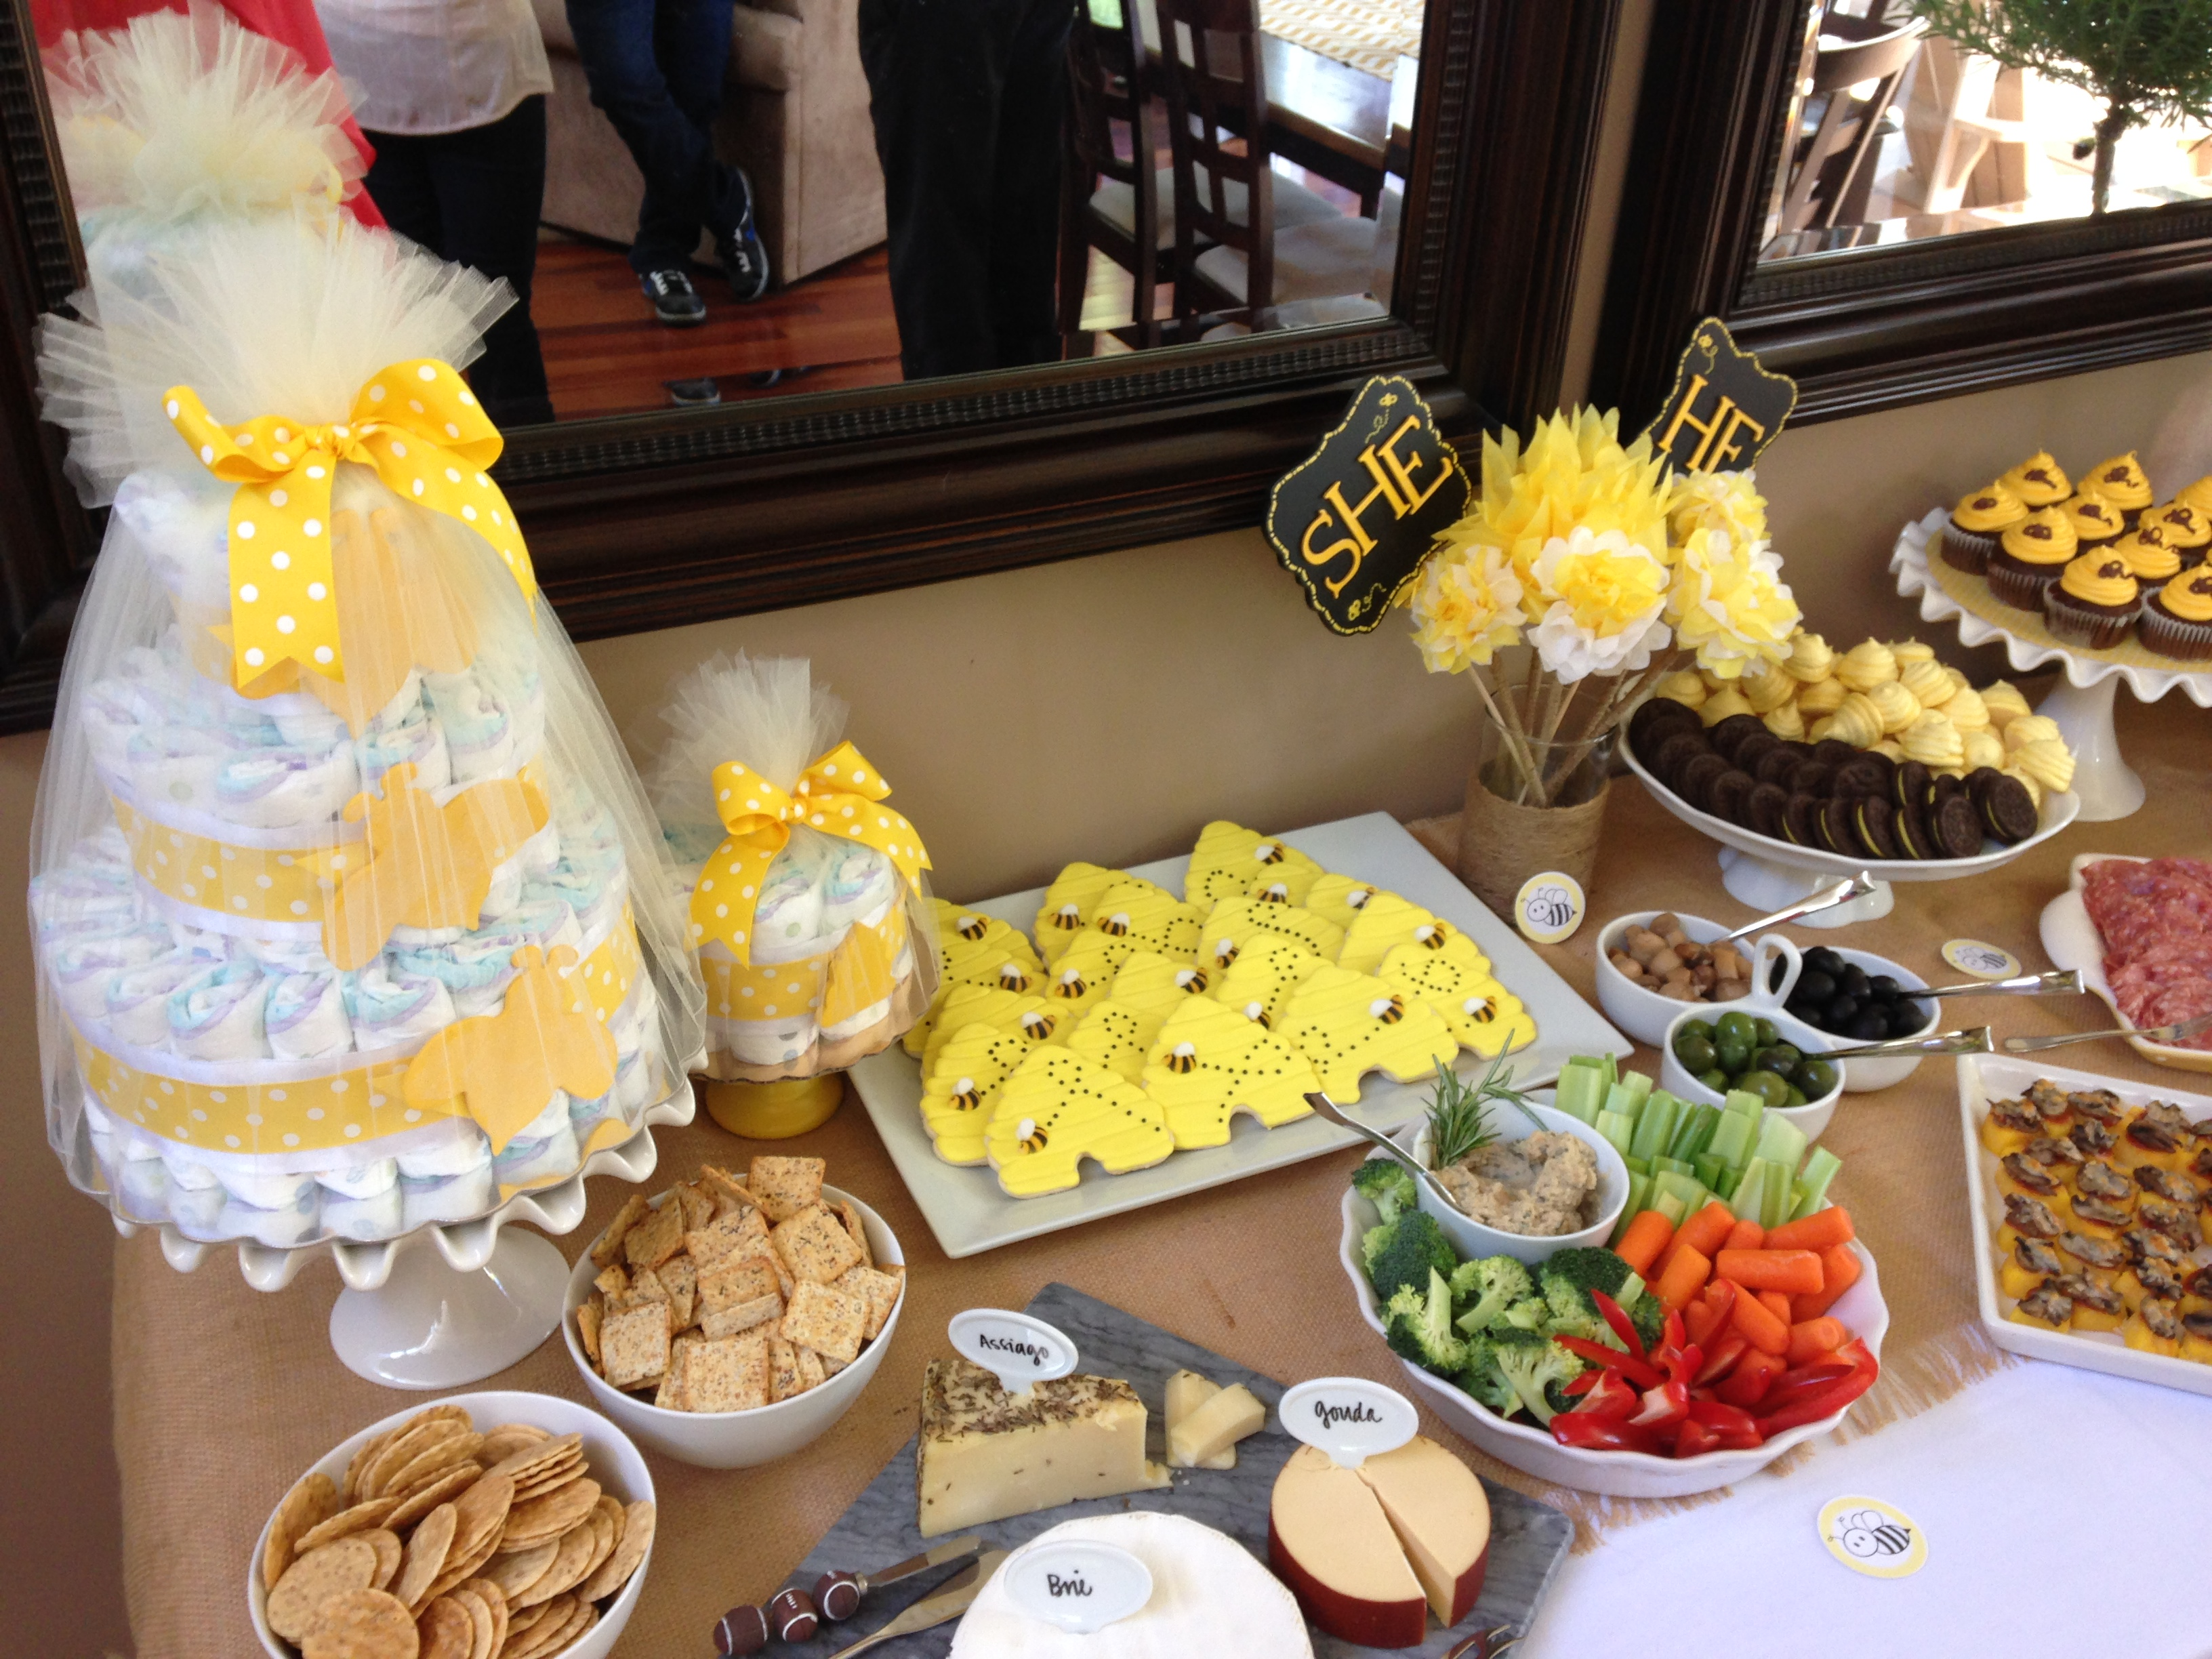 Our Bumble Bee Themed Gender Reveal Party